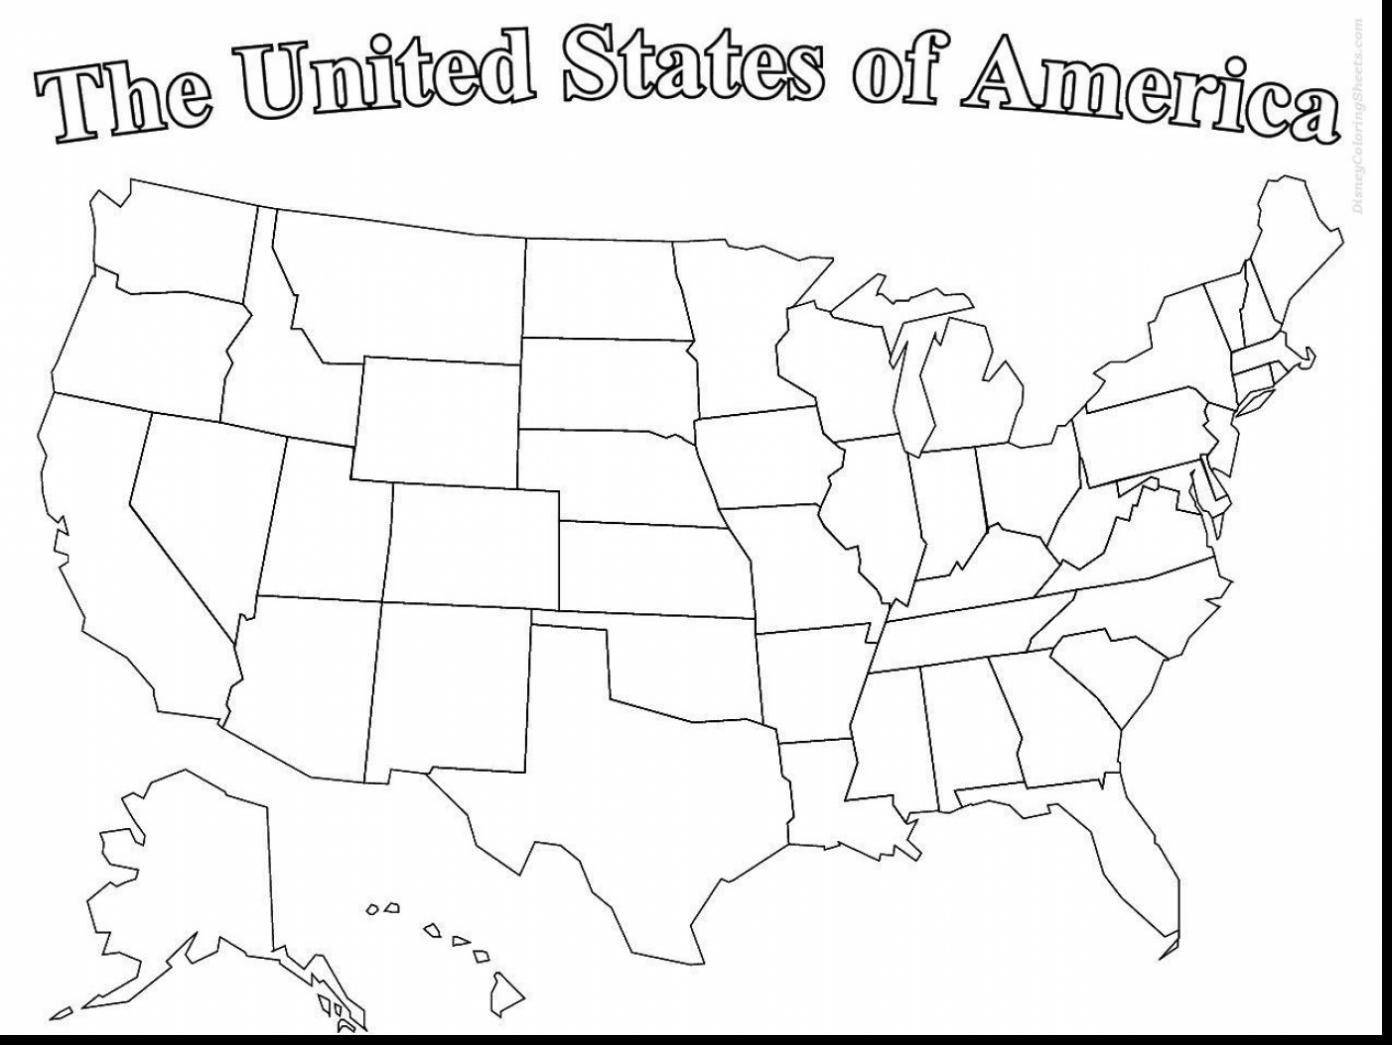 America Map Drawing at GetDrawings.com | Free for personal use ...